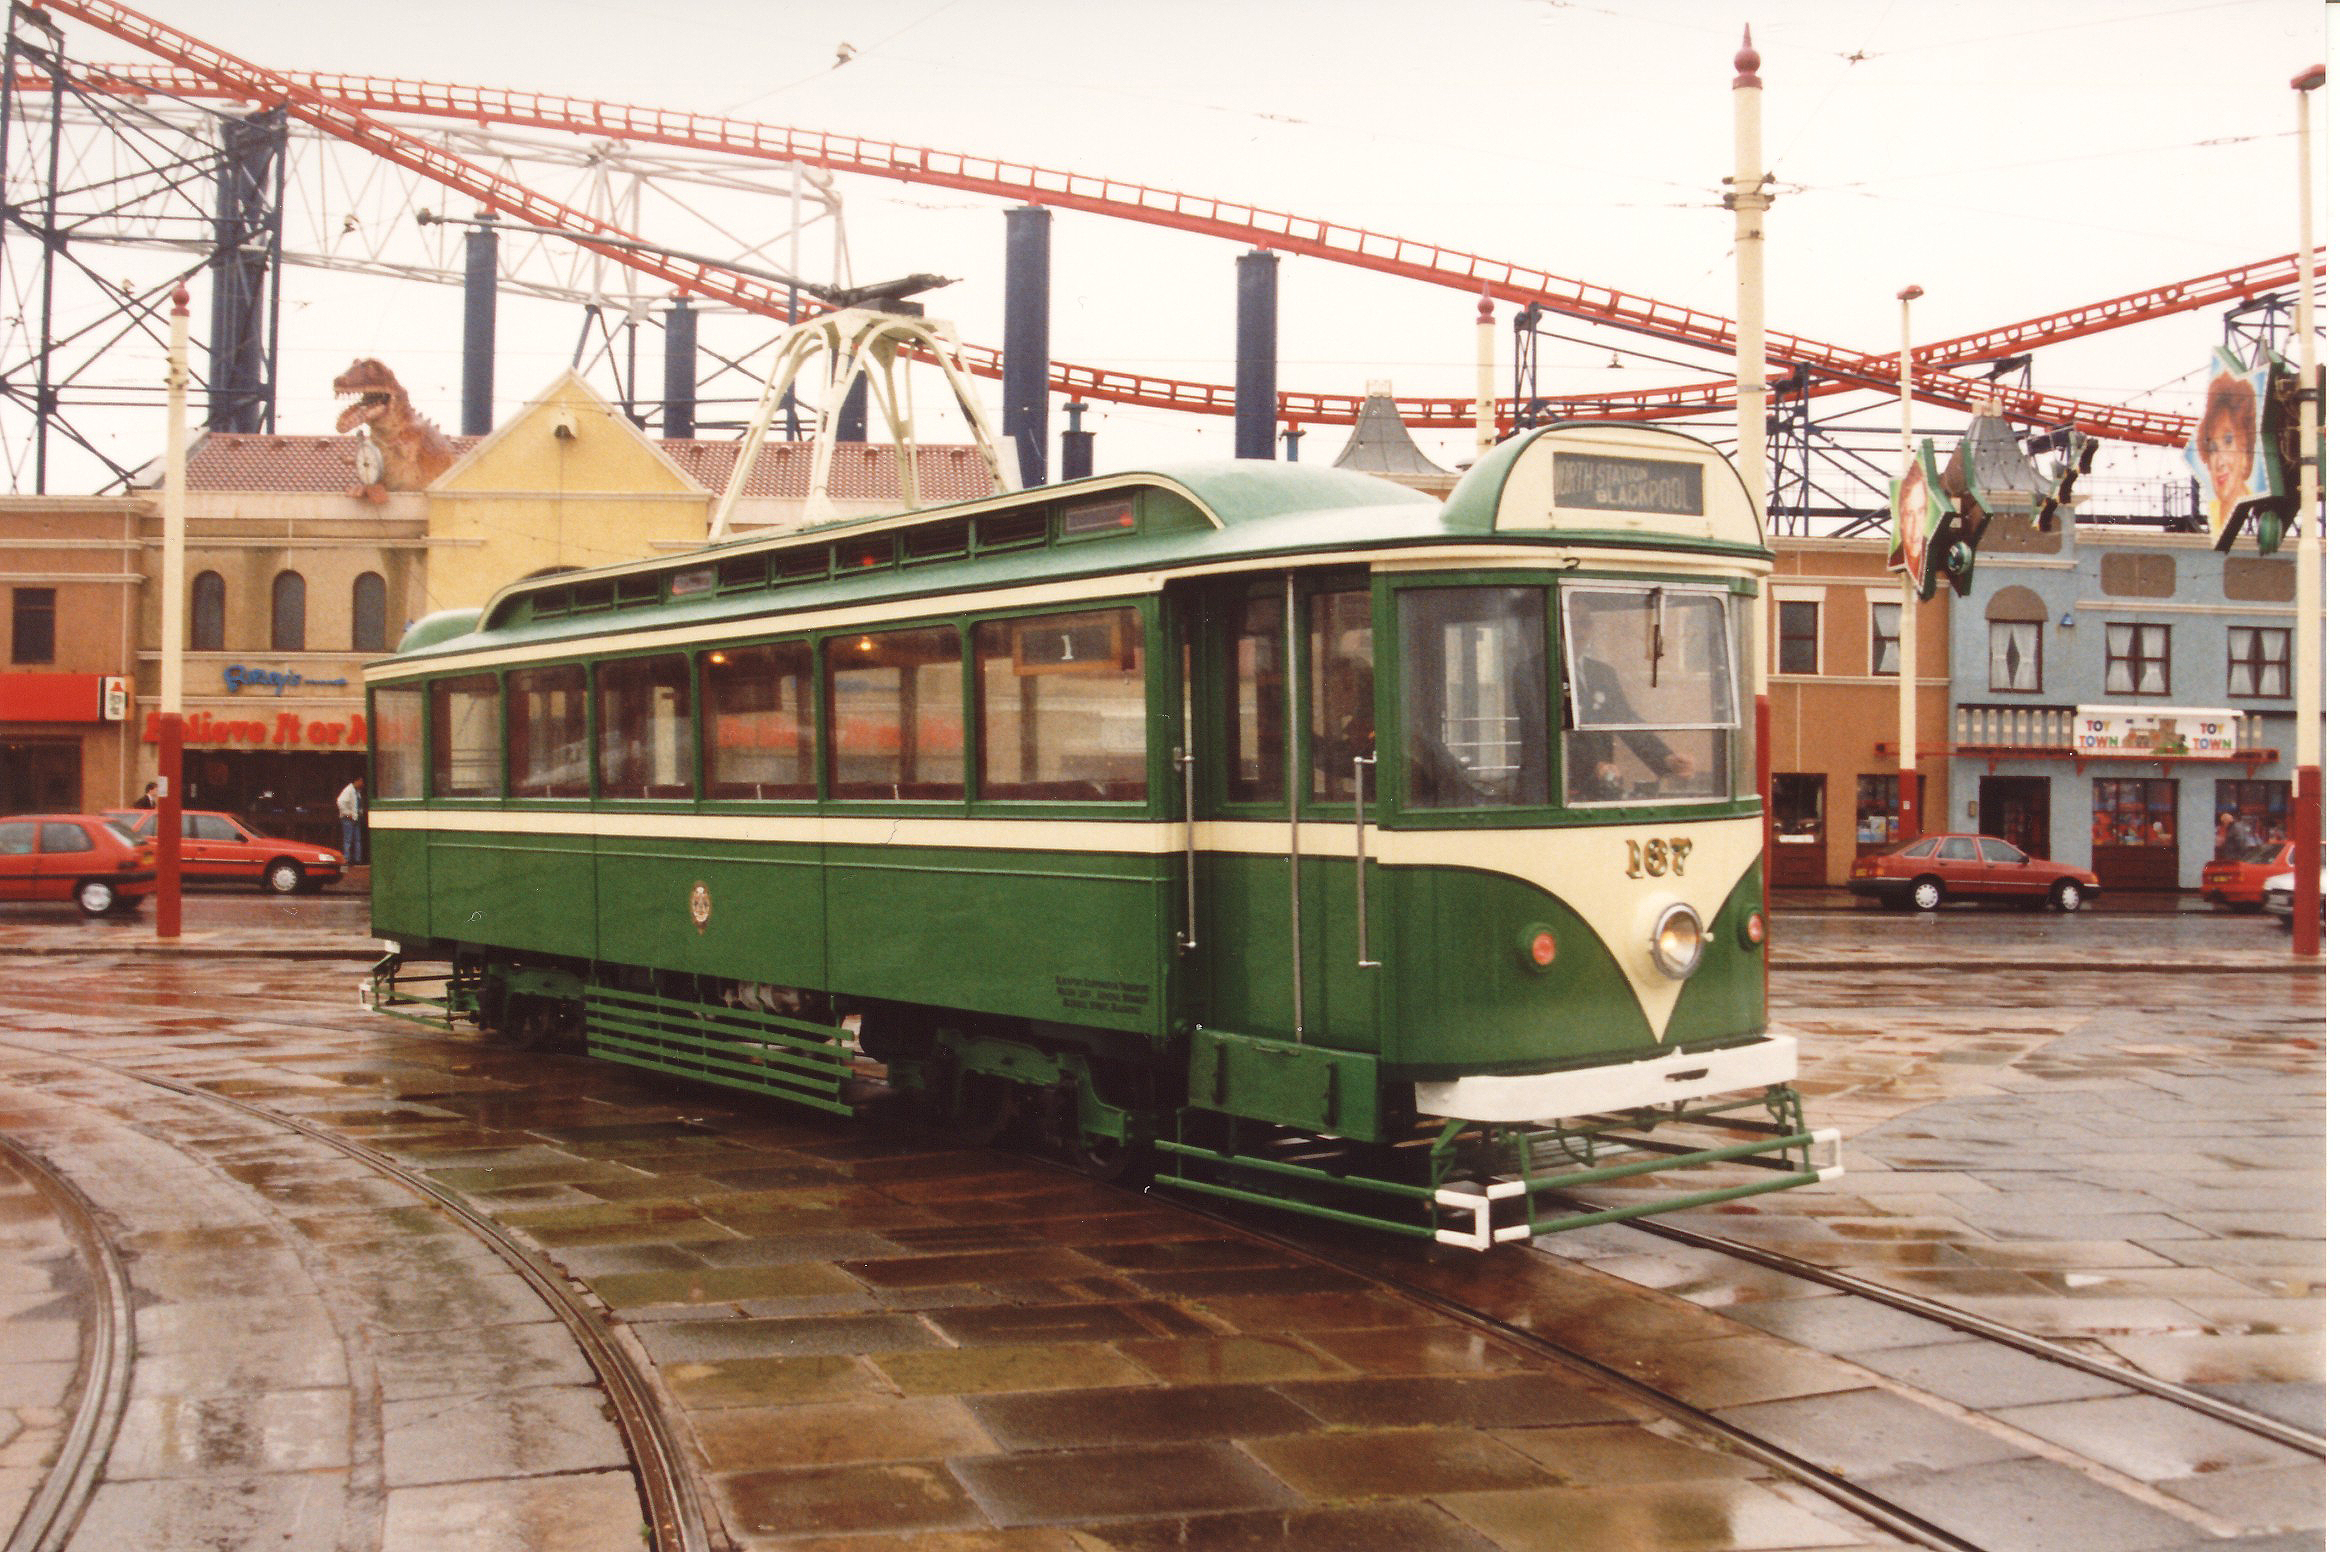 Terry Russell Trams Blackpool Pantograph Tramcar Kit